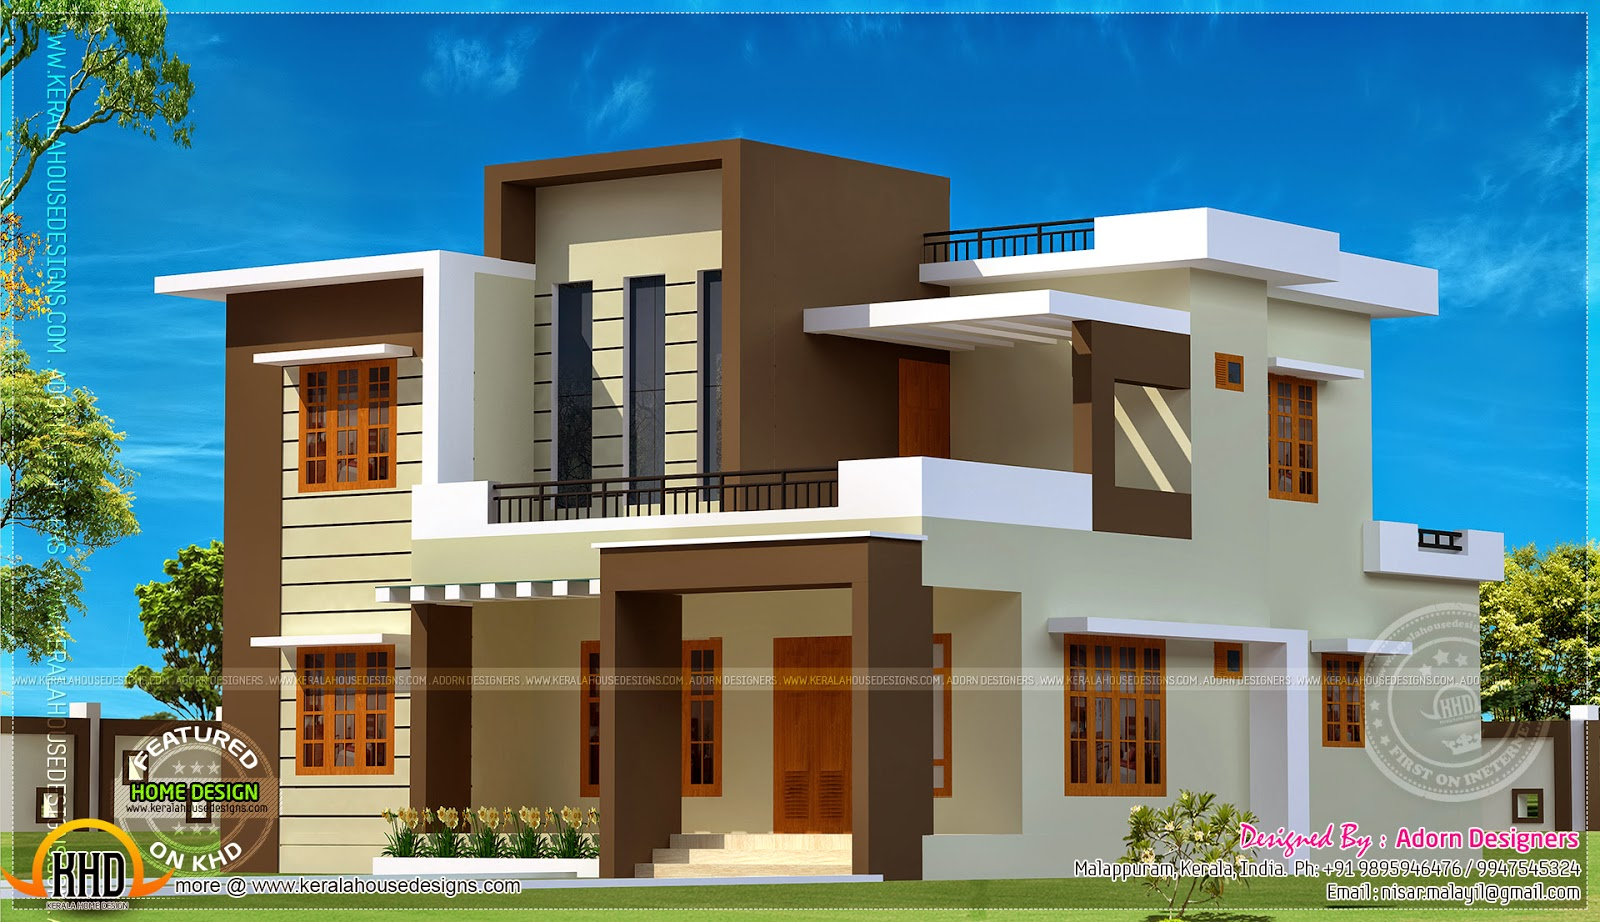 New model house flat roof 2016 for Model house plan